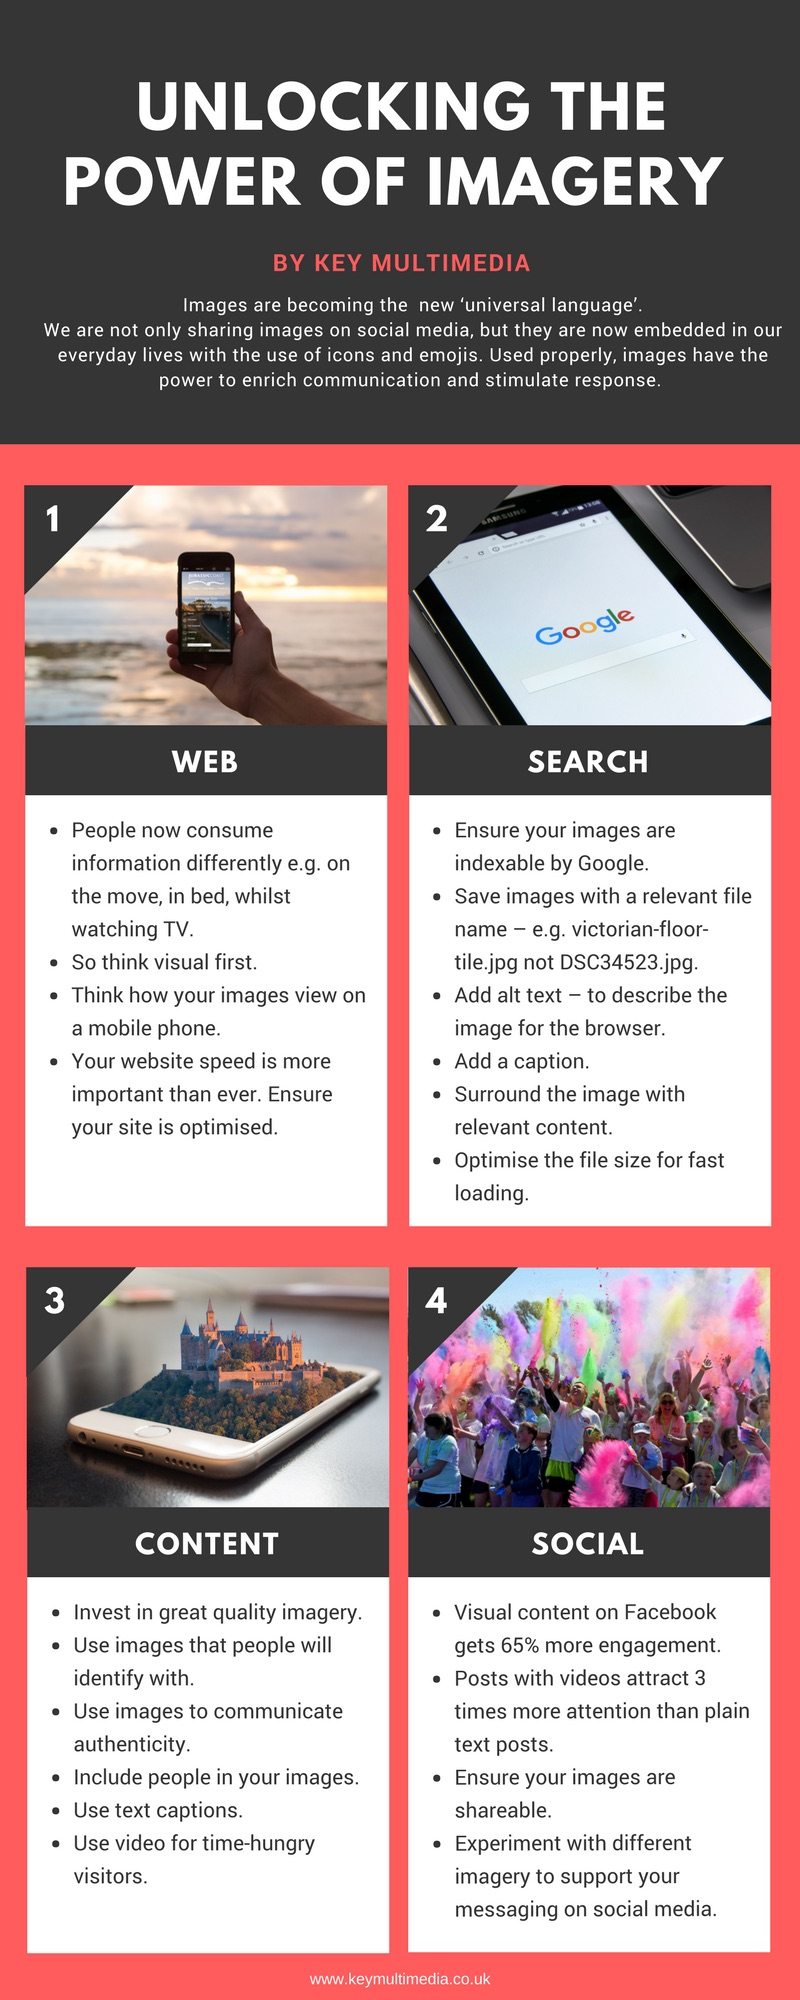 Unlocking the Power of Imagery Infographic